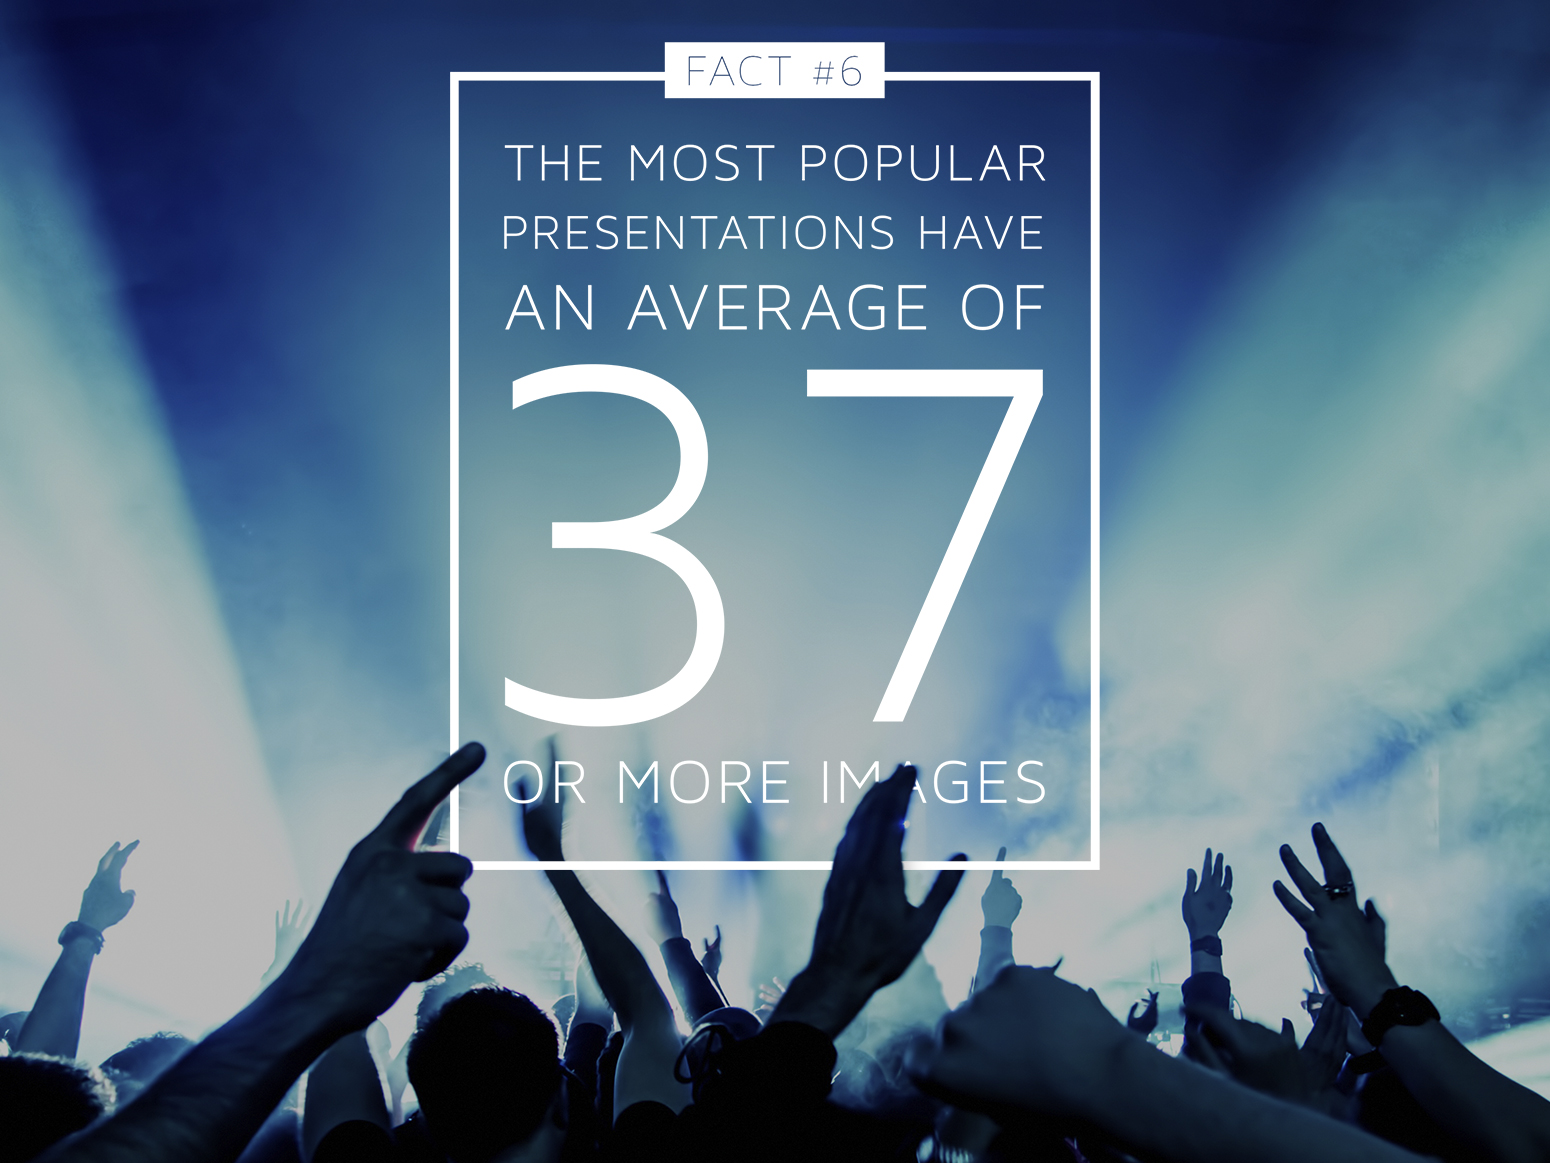 6-the-most-popular-presentations-have-an-average-of-37-or-more-images